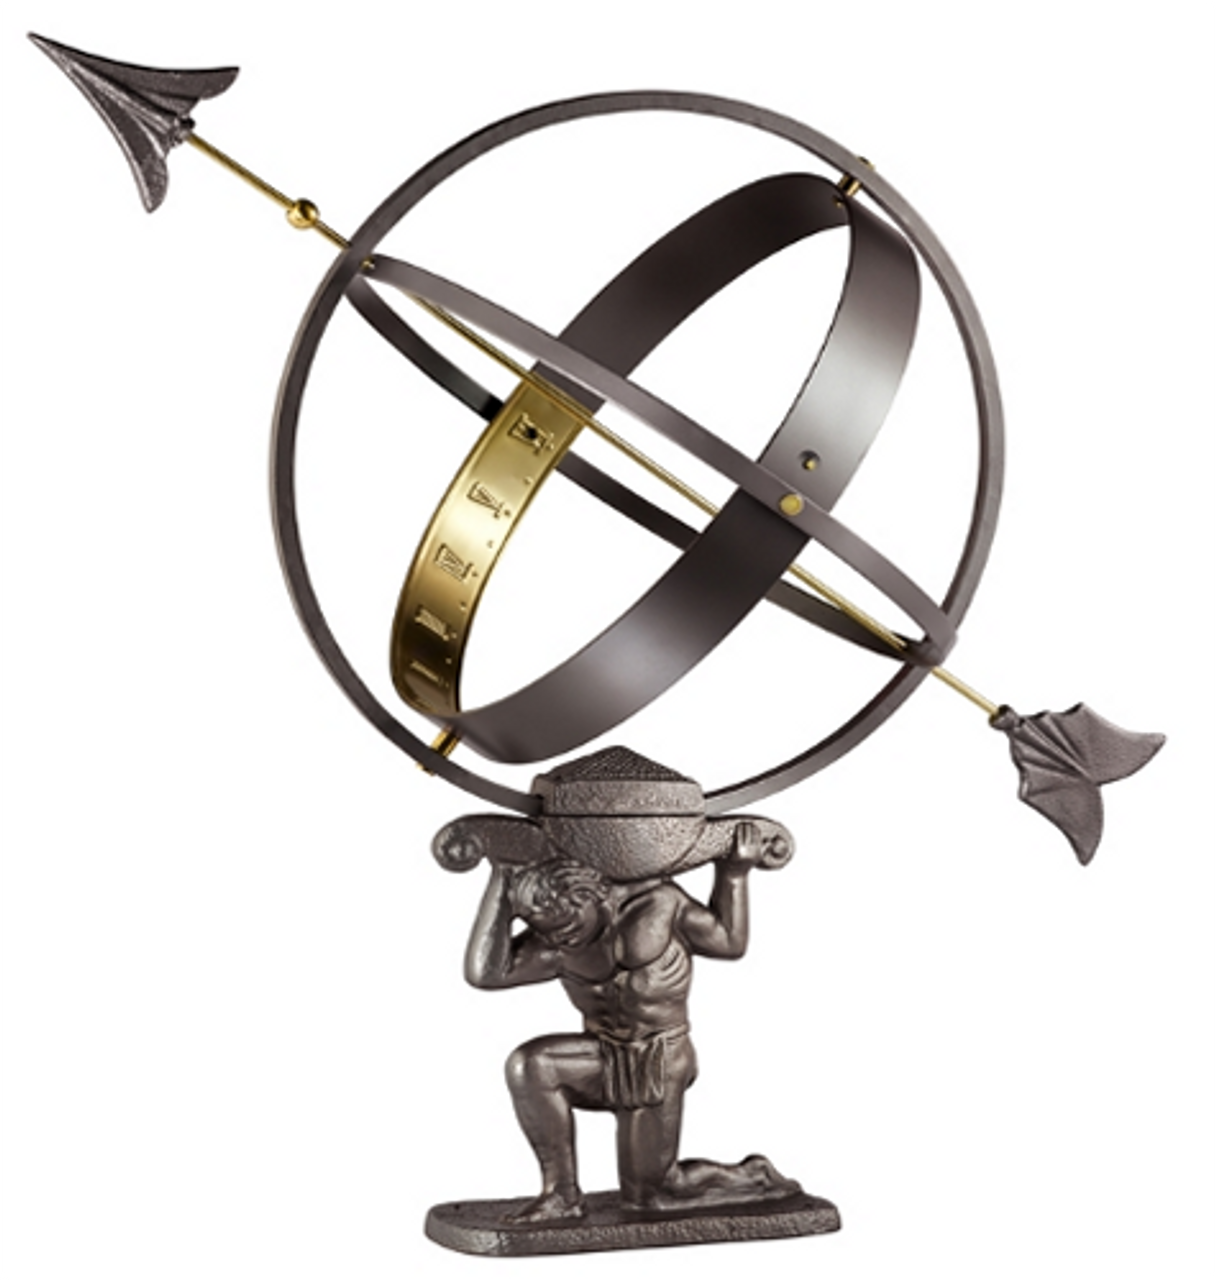 Atlas Armillary Sphere - Armillary Sundial by Good Directions